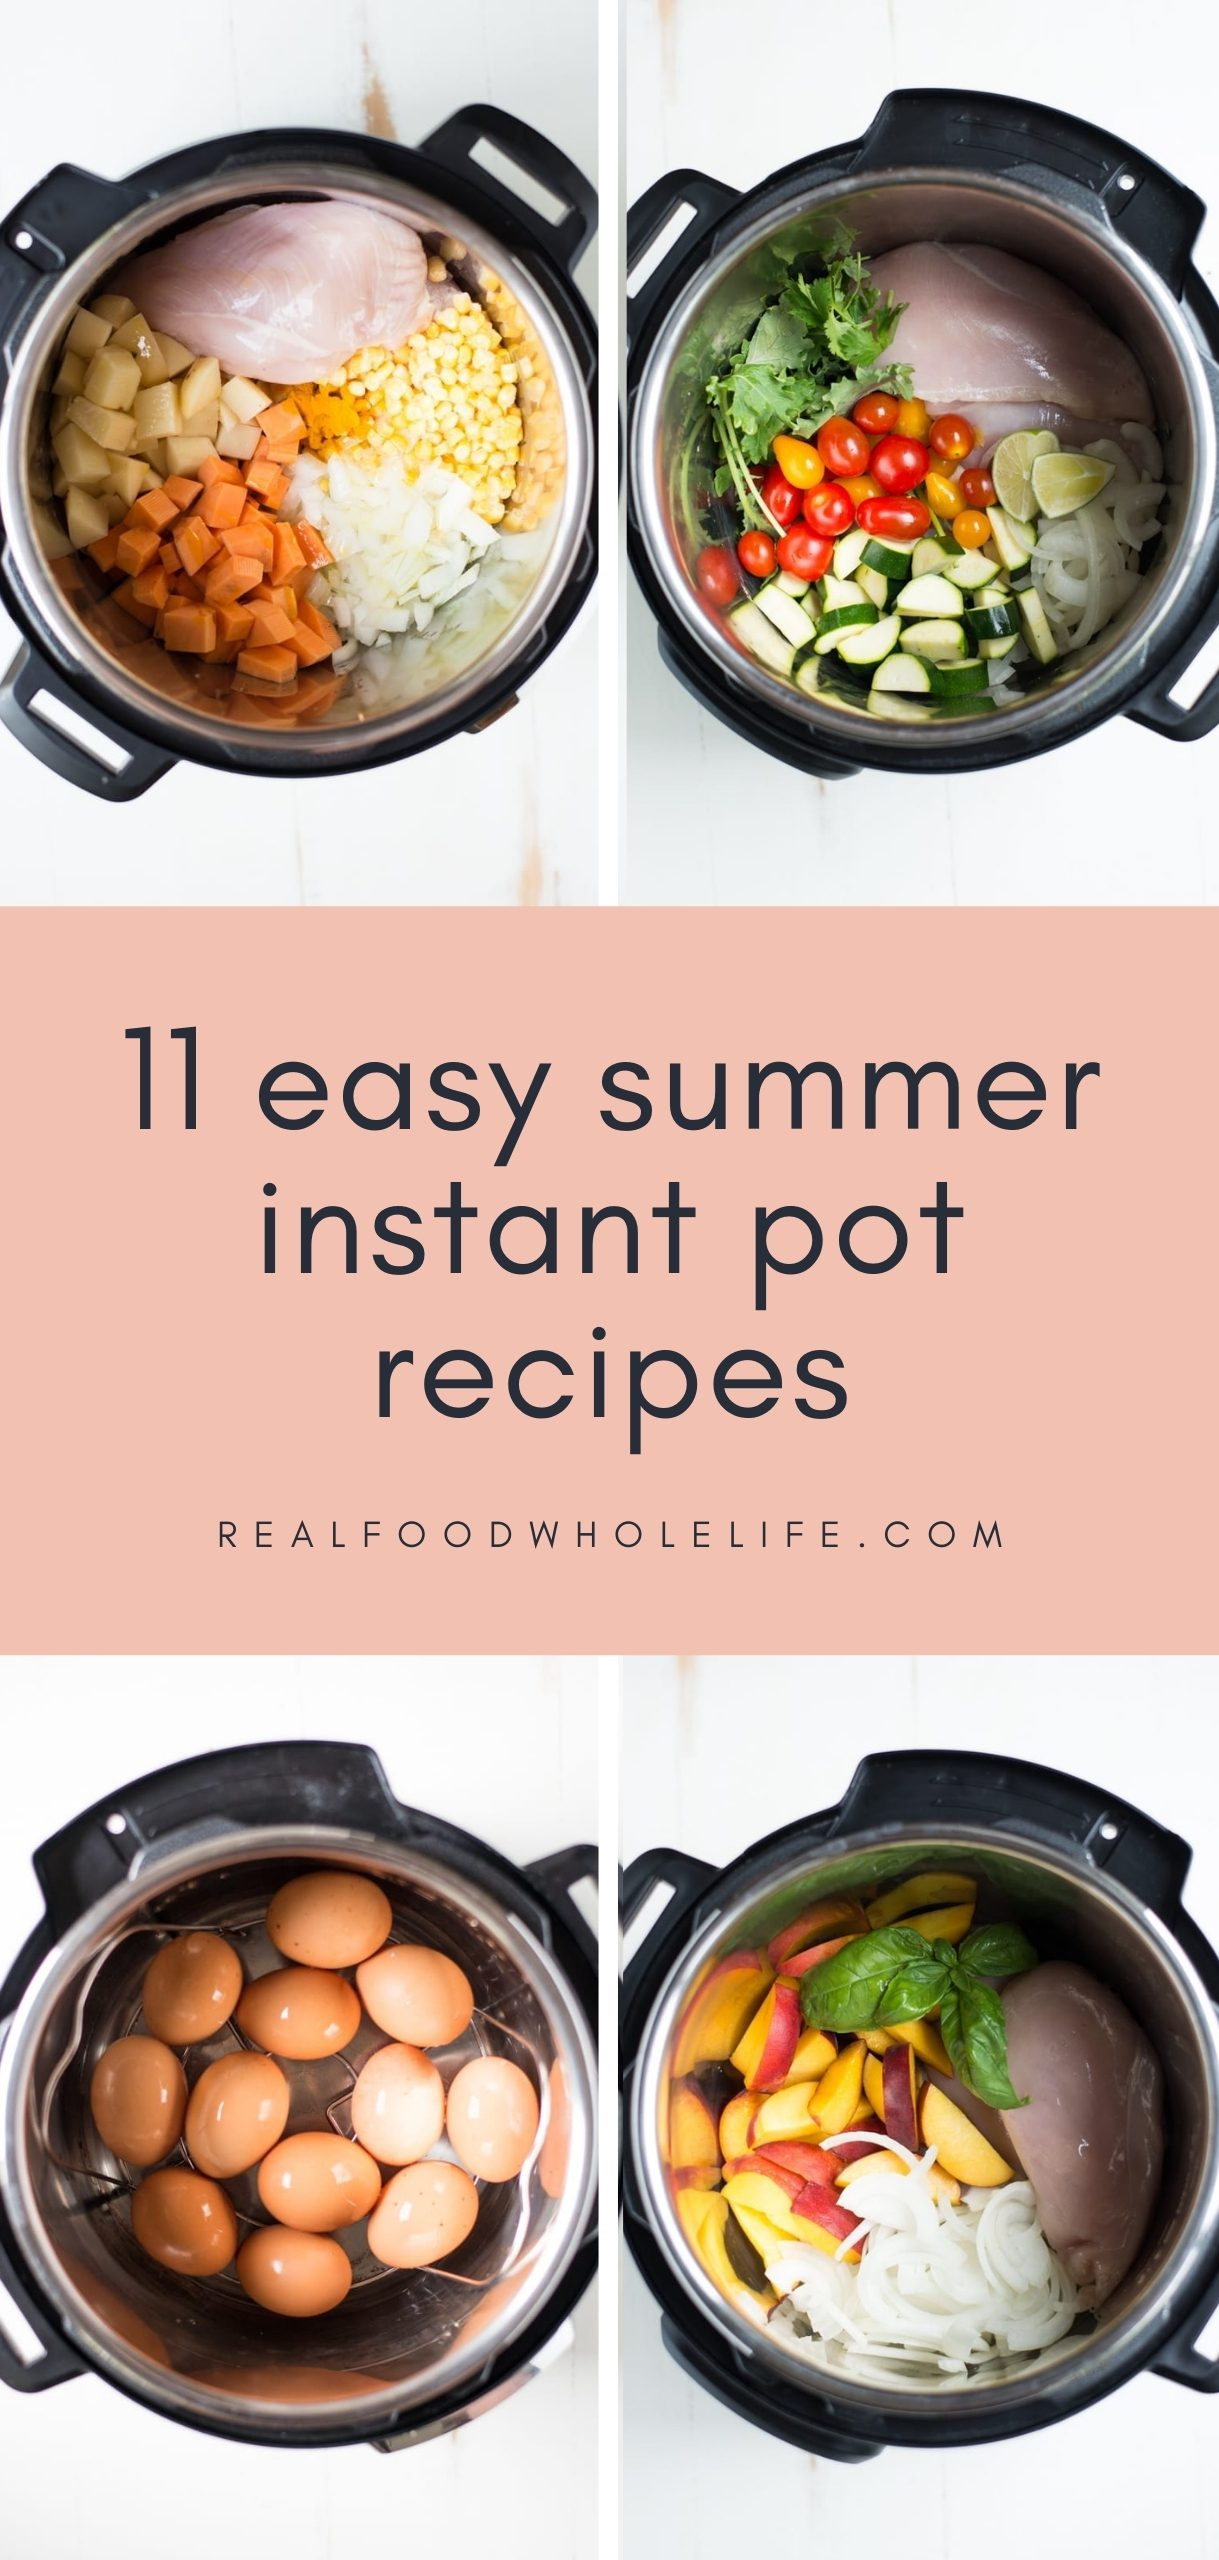 four instant pot recipes shown on white wood background with pink background block and navy text that reads 11 easy summer instant pot recipes